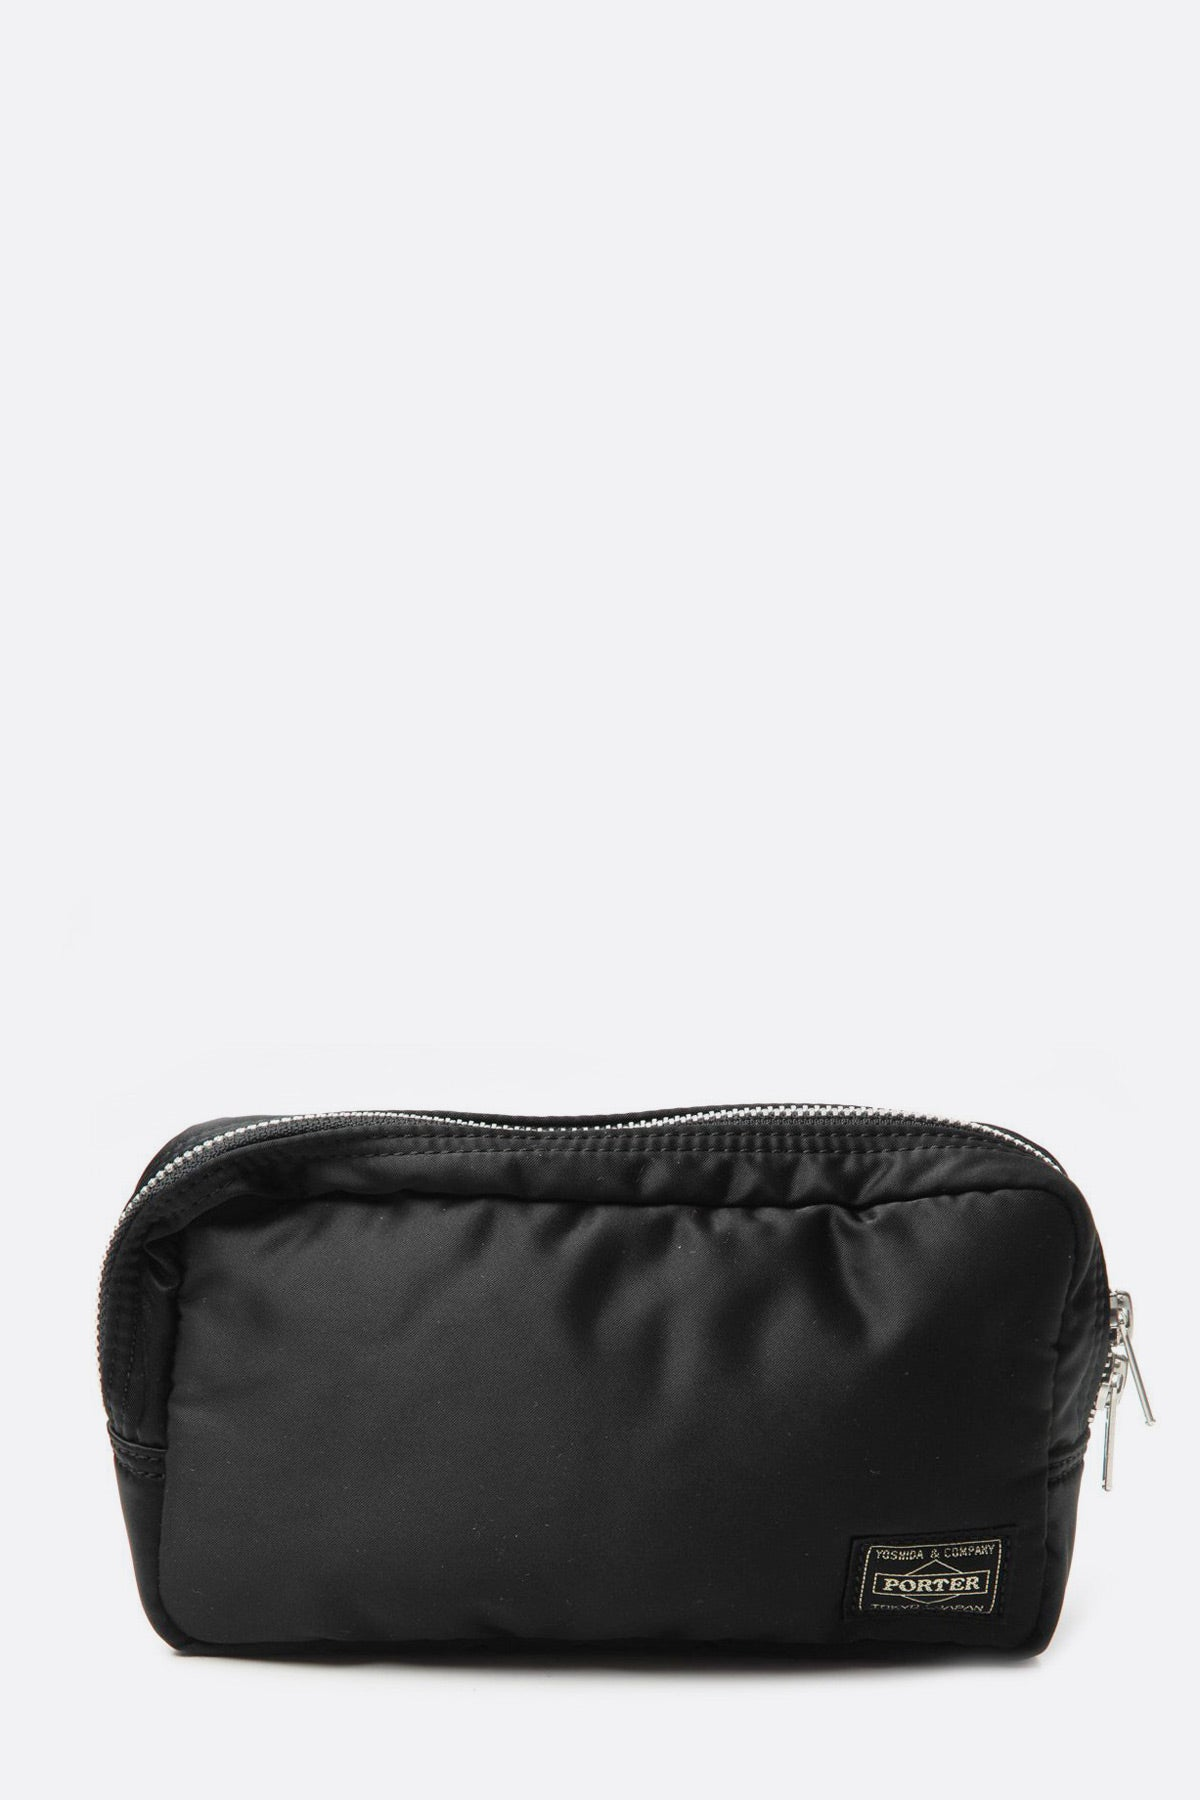 Black Tanker Pouch by Porter